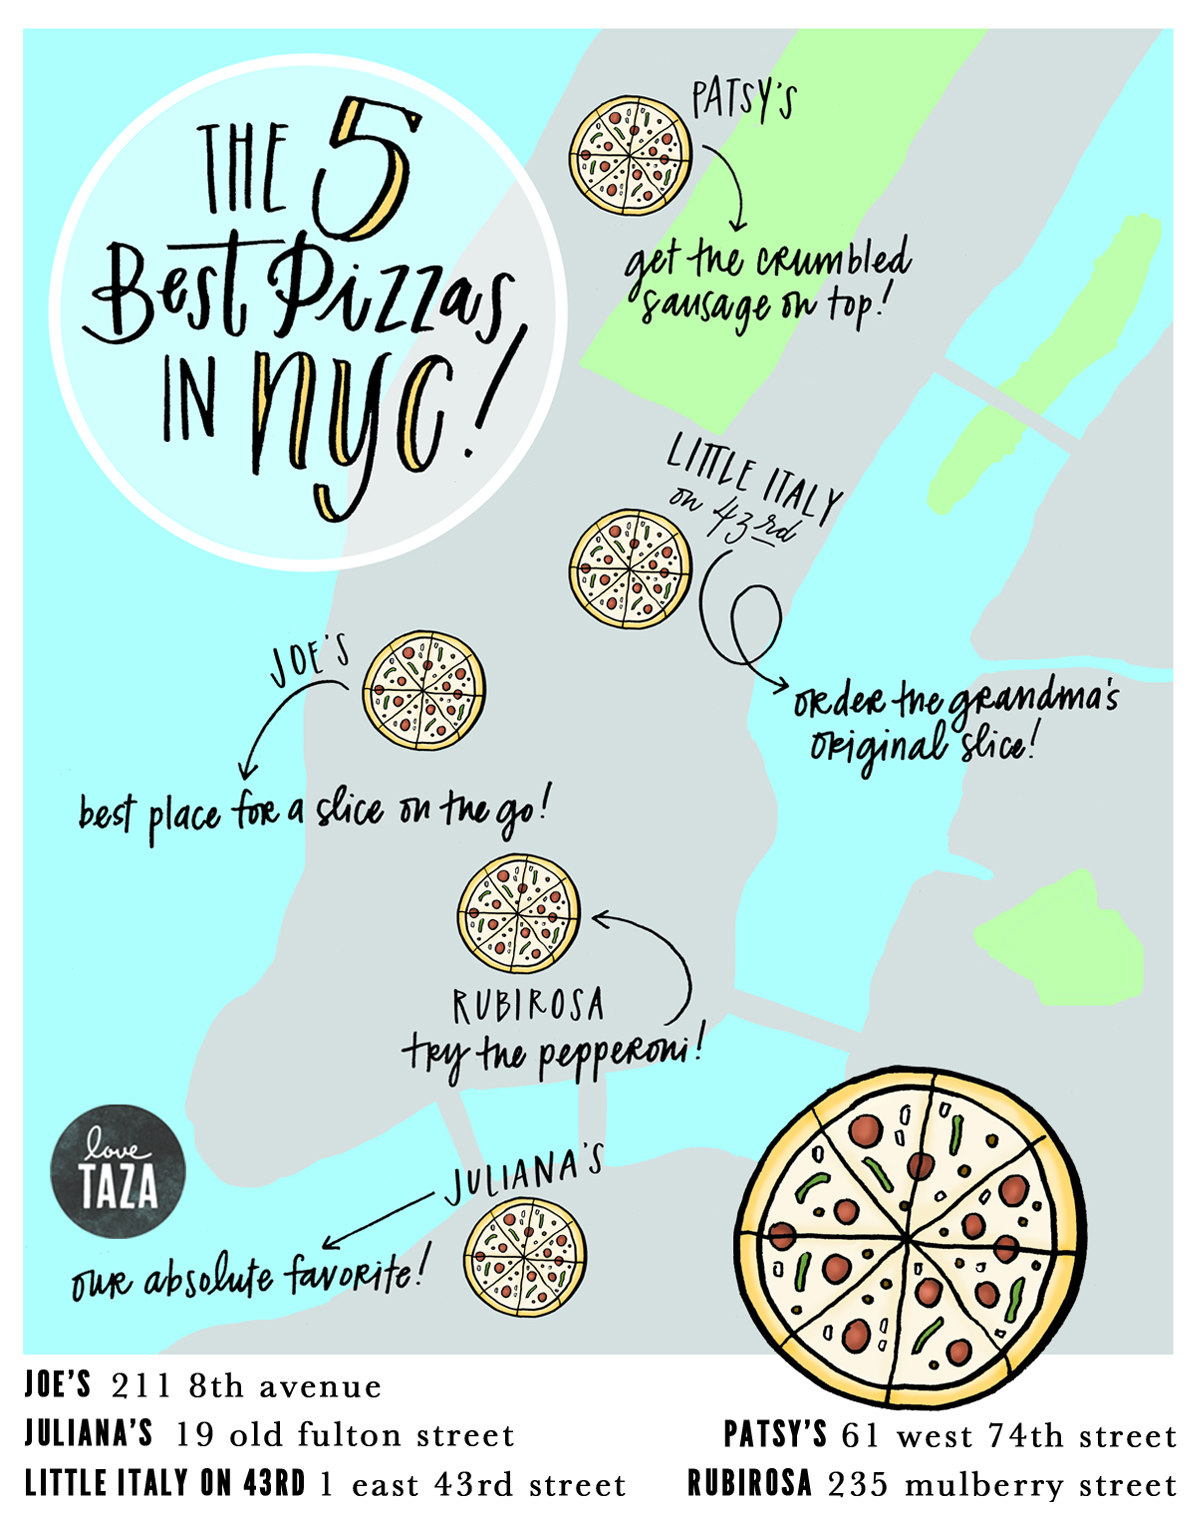 taza's new york city guide: the 5 best pizzas in the city!